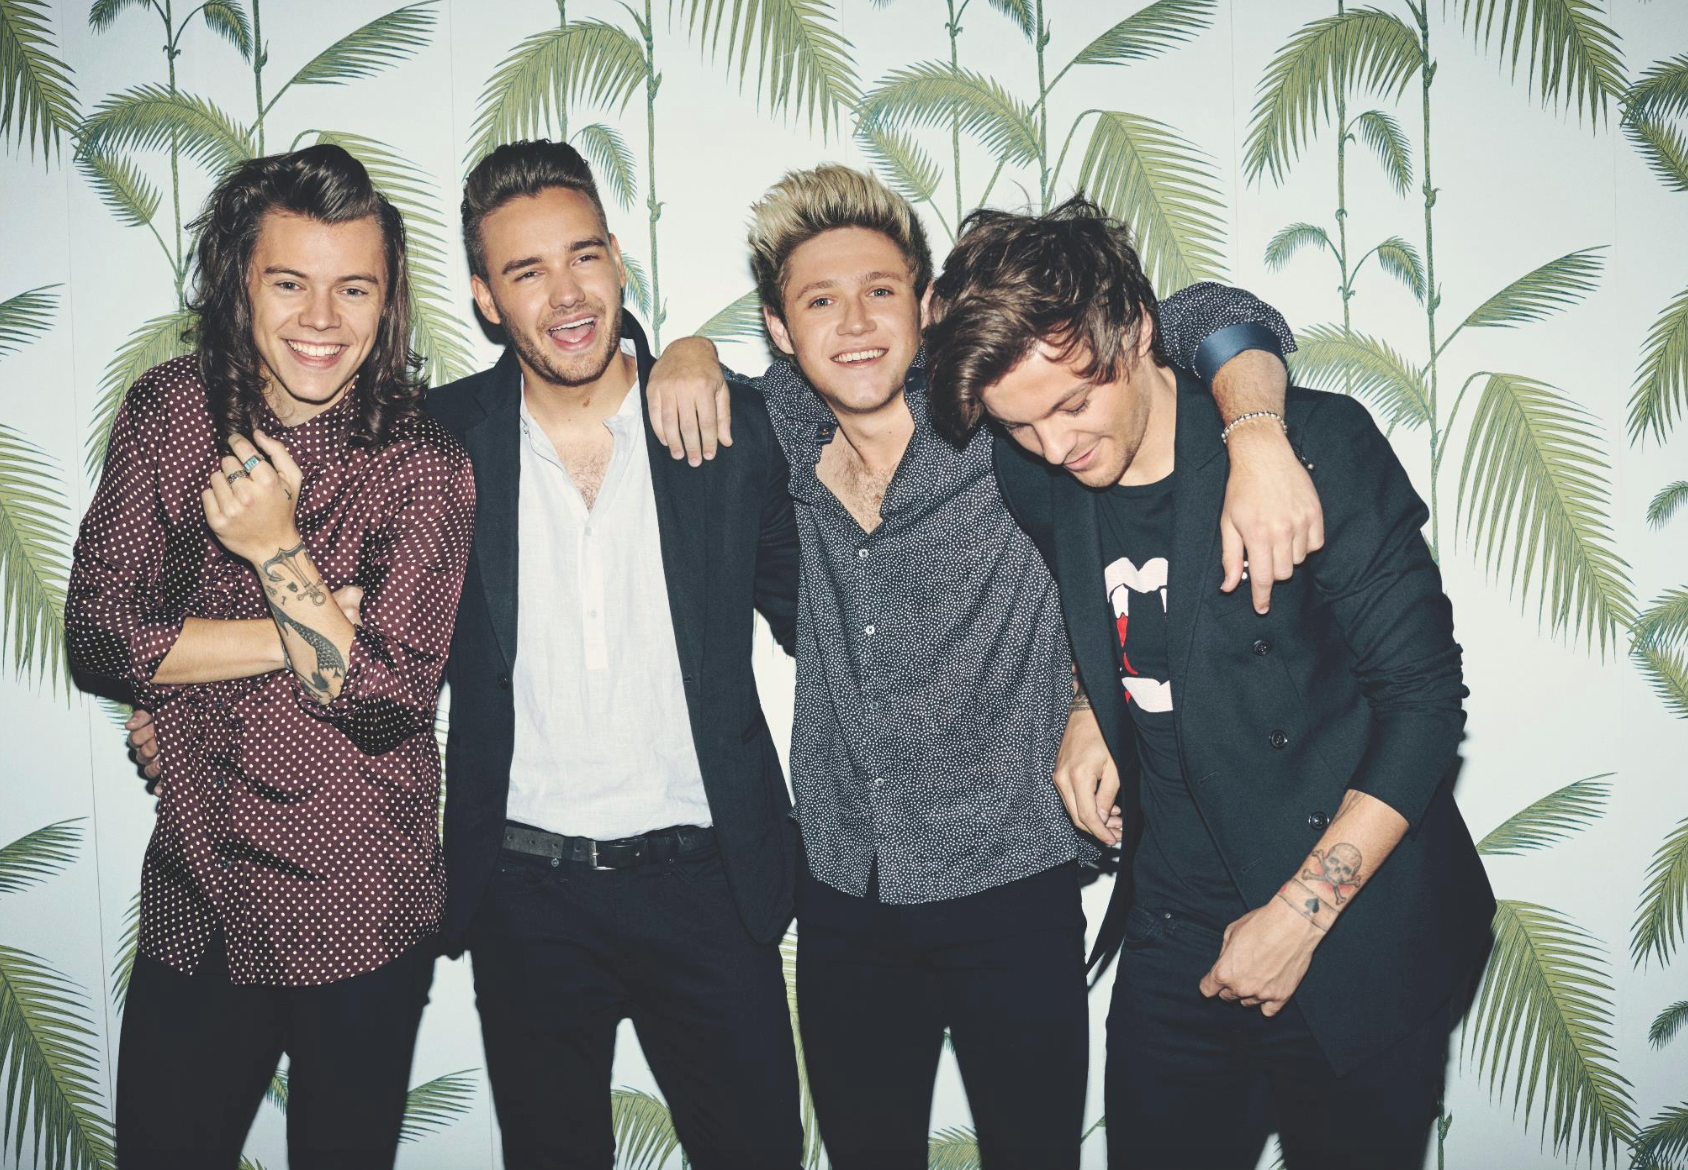 A look back at One Direction, as the band celebrates 10-year anniversary